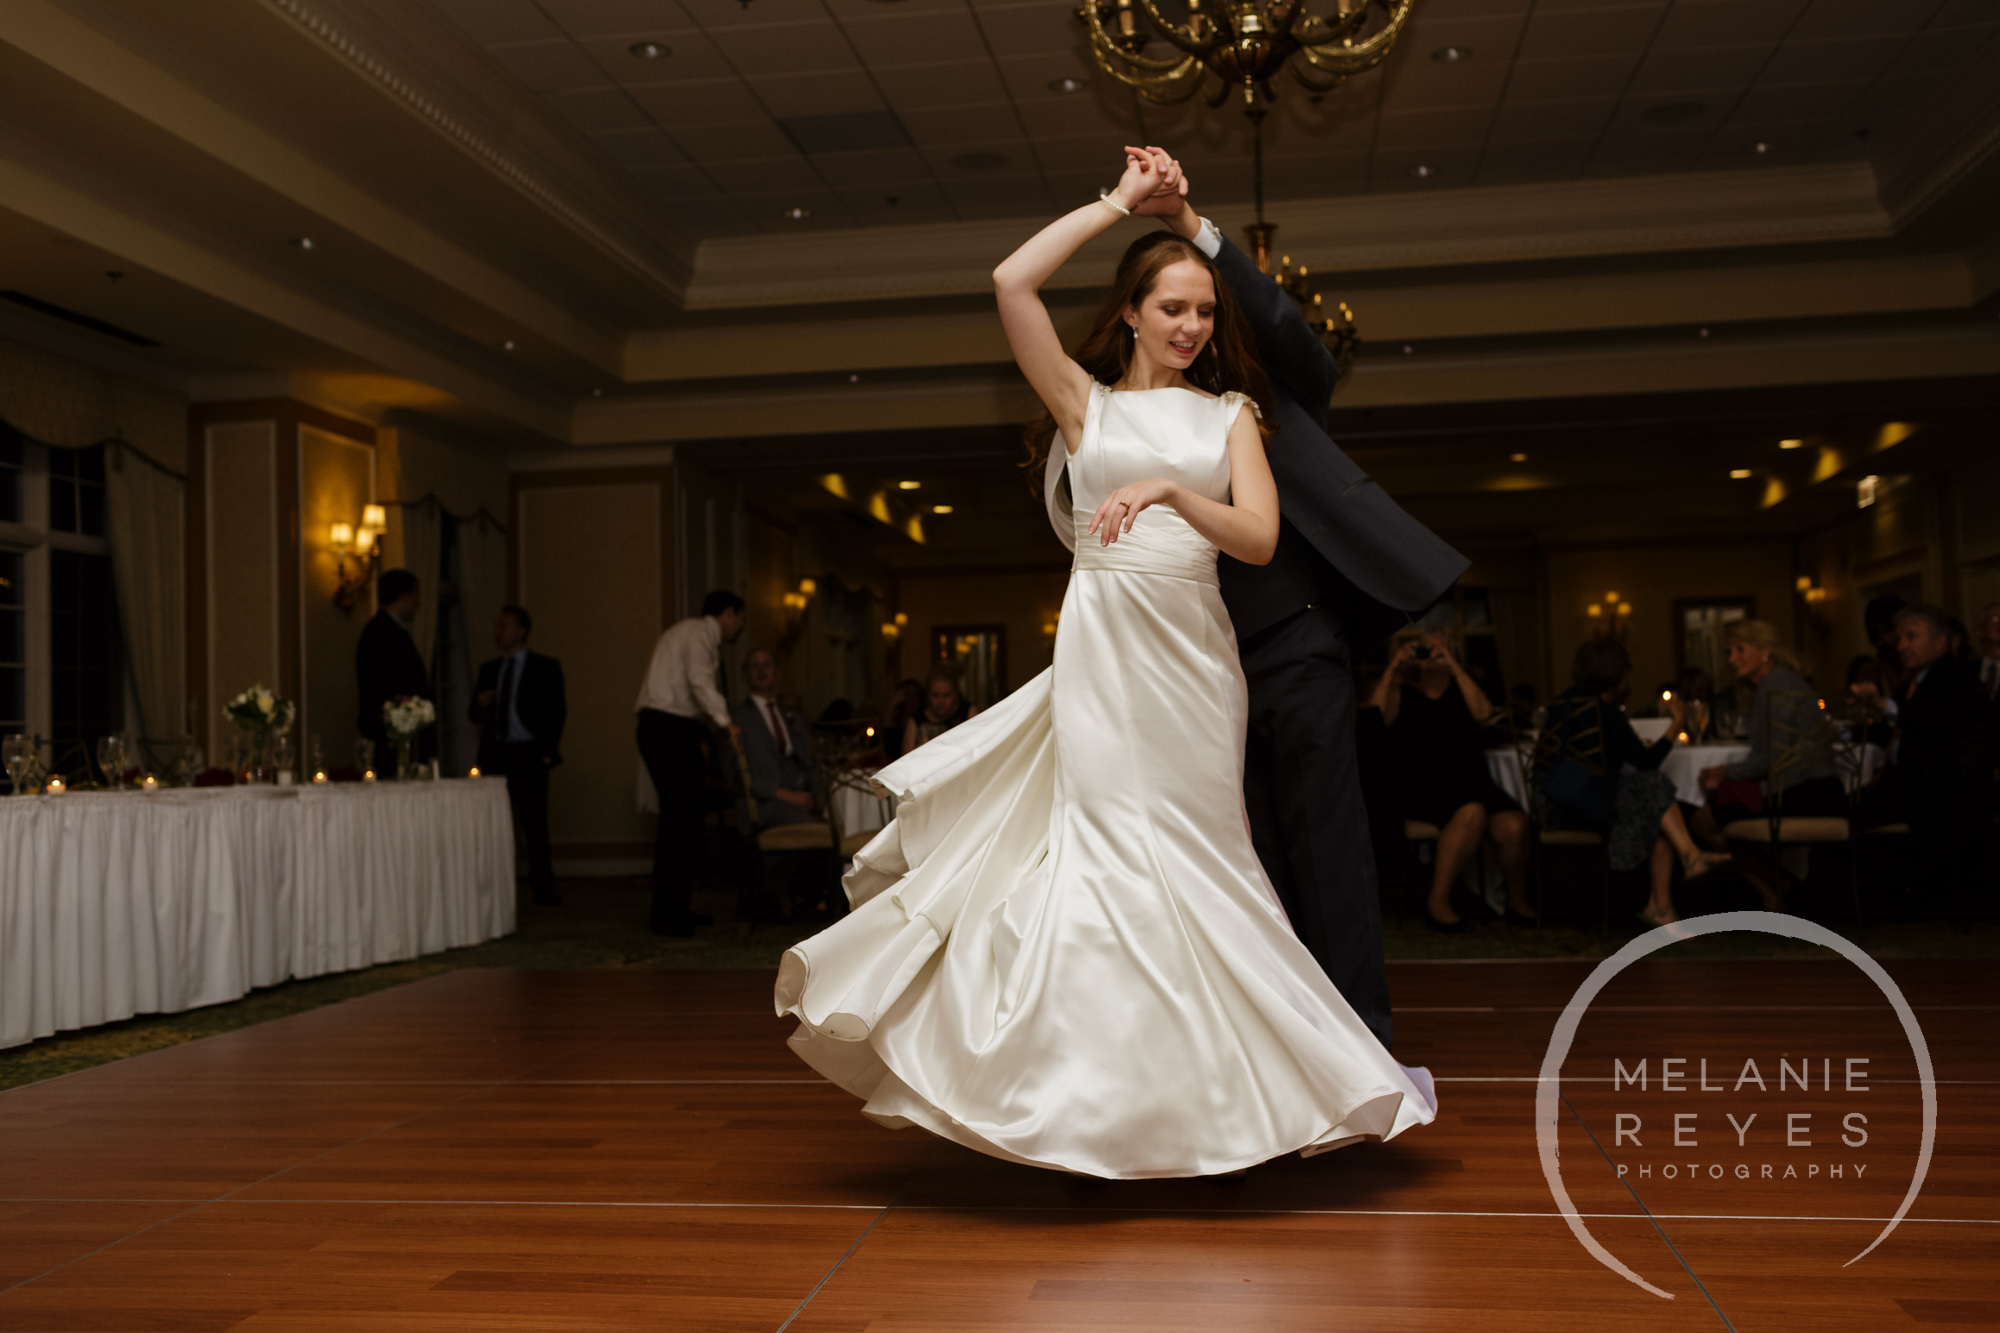 wedding_photographer_captured_moments_melaniereyes_159.jpg